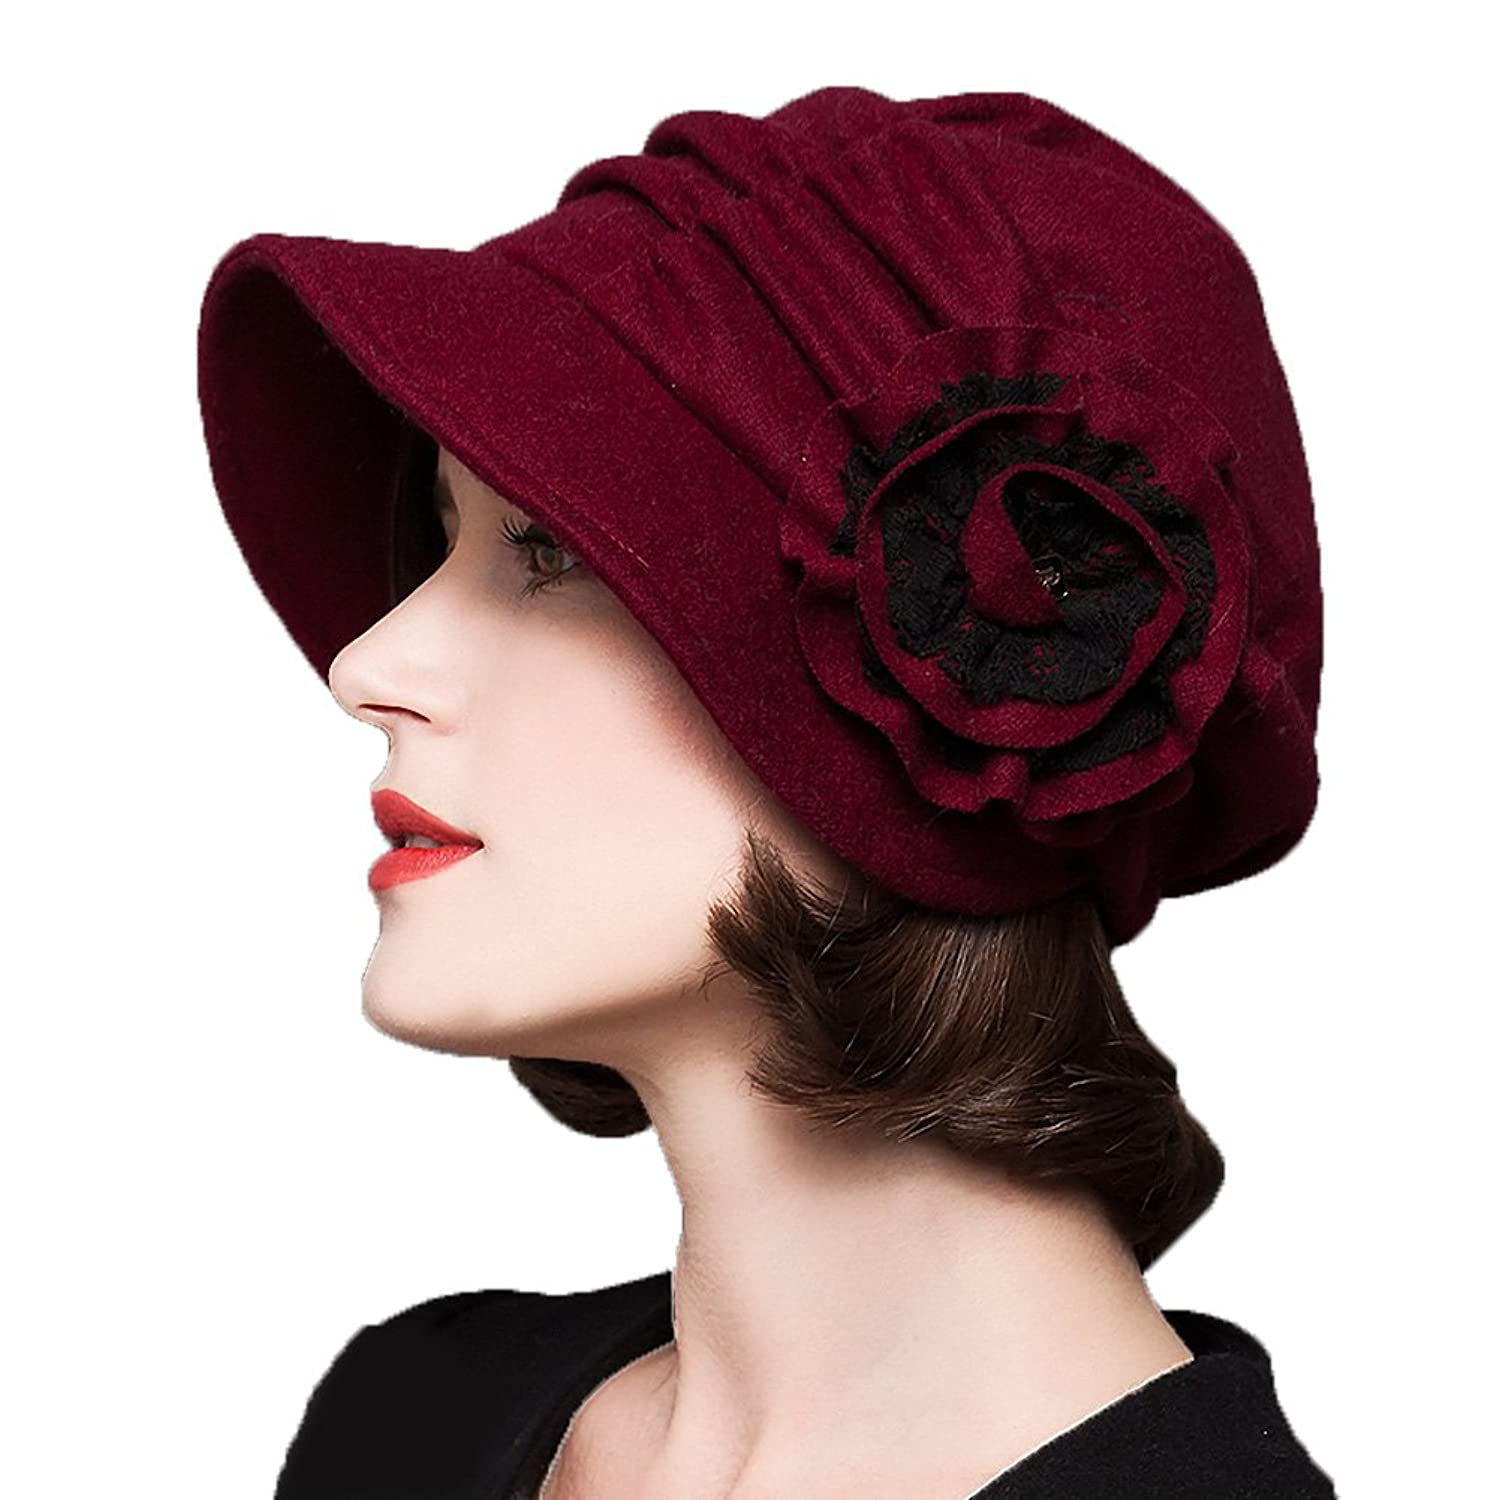 1920s Costumes: Flapper, Great Gatsby, Gangster Girl Decorative Flowers Wool Beret Maitose Trade Womens Decorative Flowers Wool Beret $28.40 AT vintagedancer.com